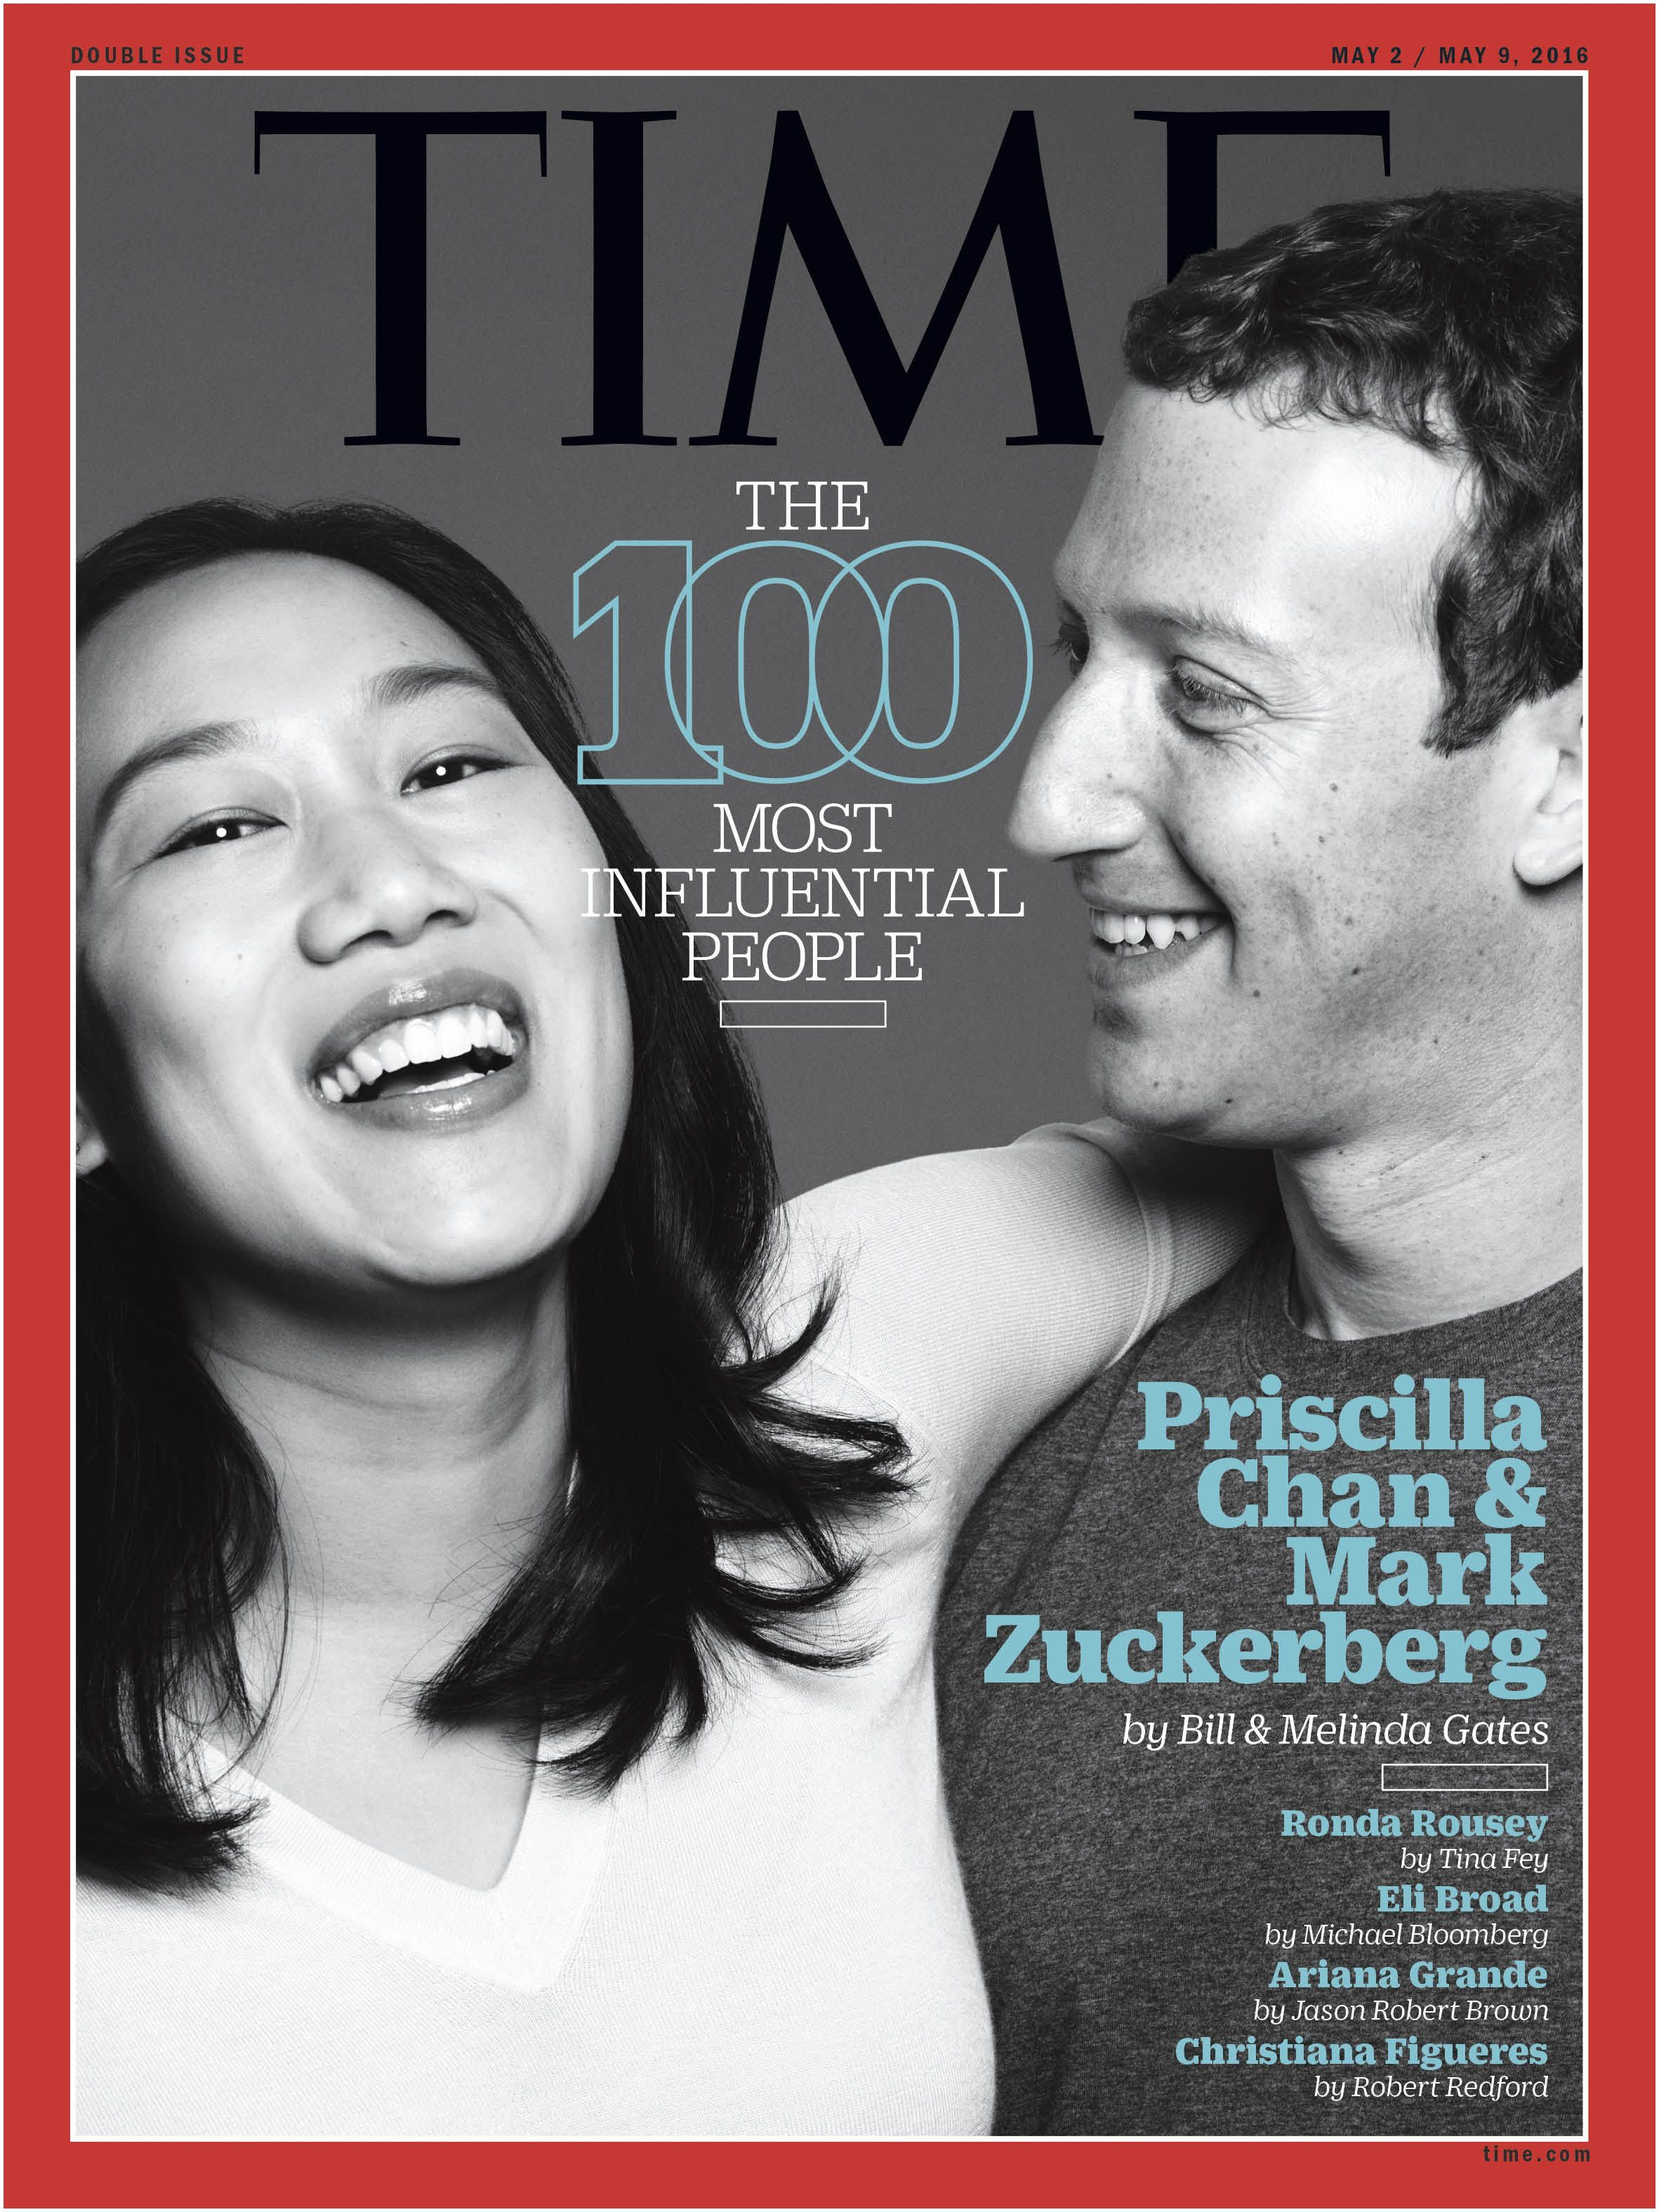 Magazines for 9 Year Olds Priscilla Chan and Mark Zuckerberg Time Covers